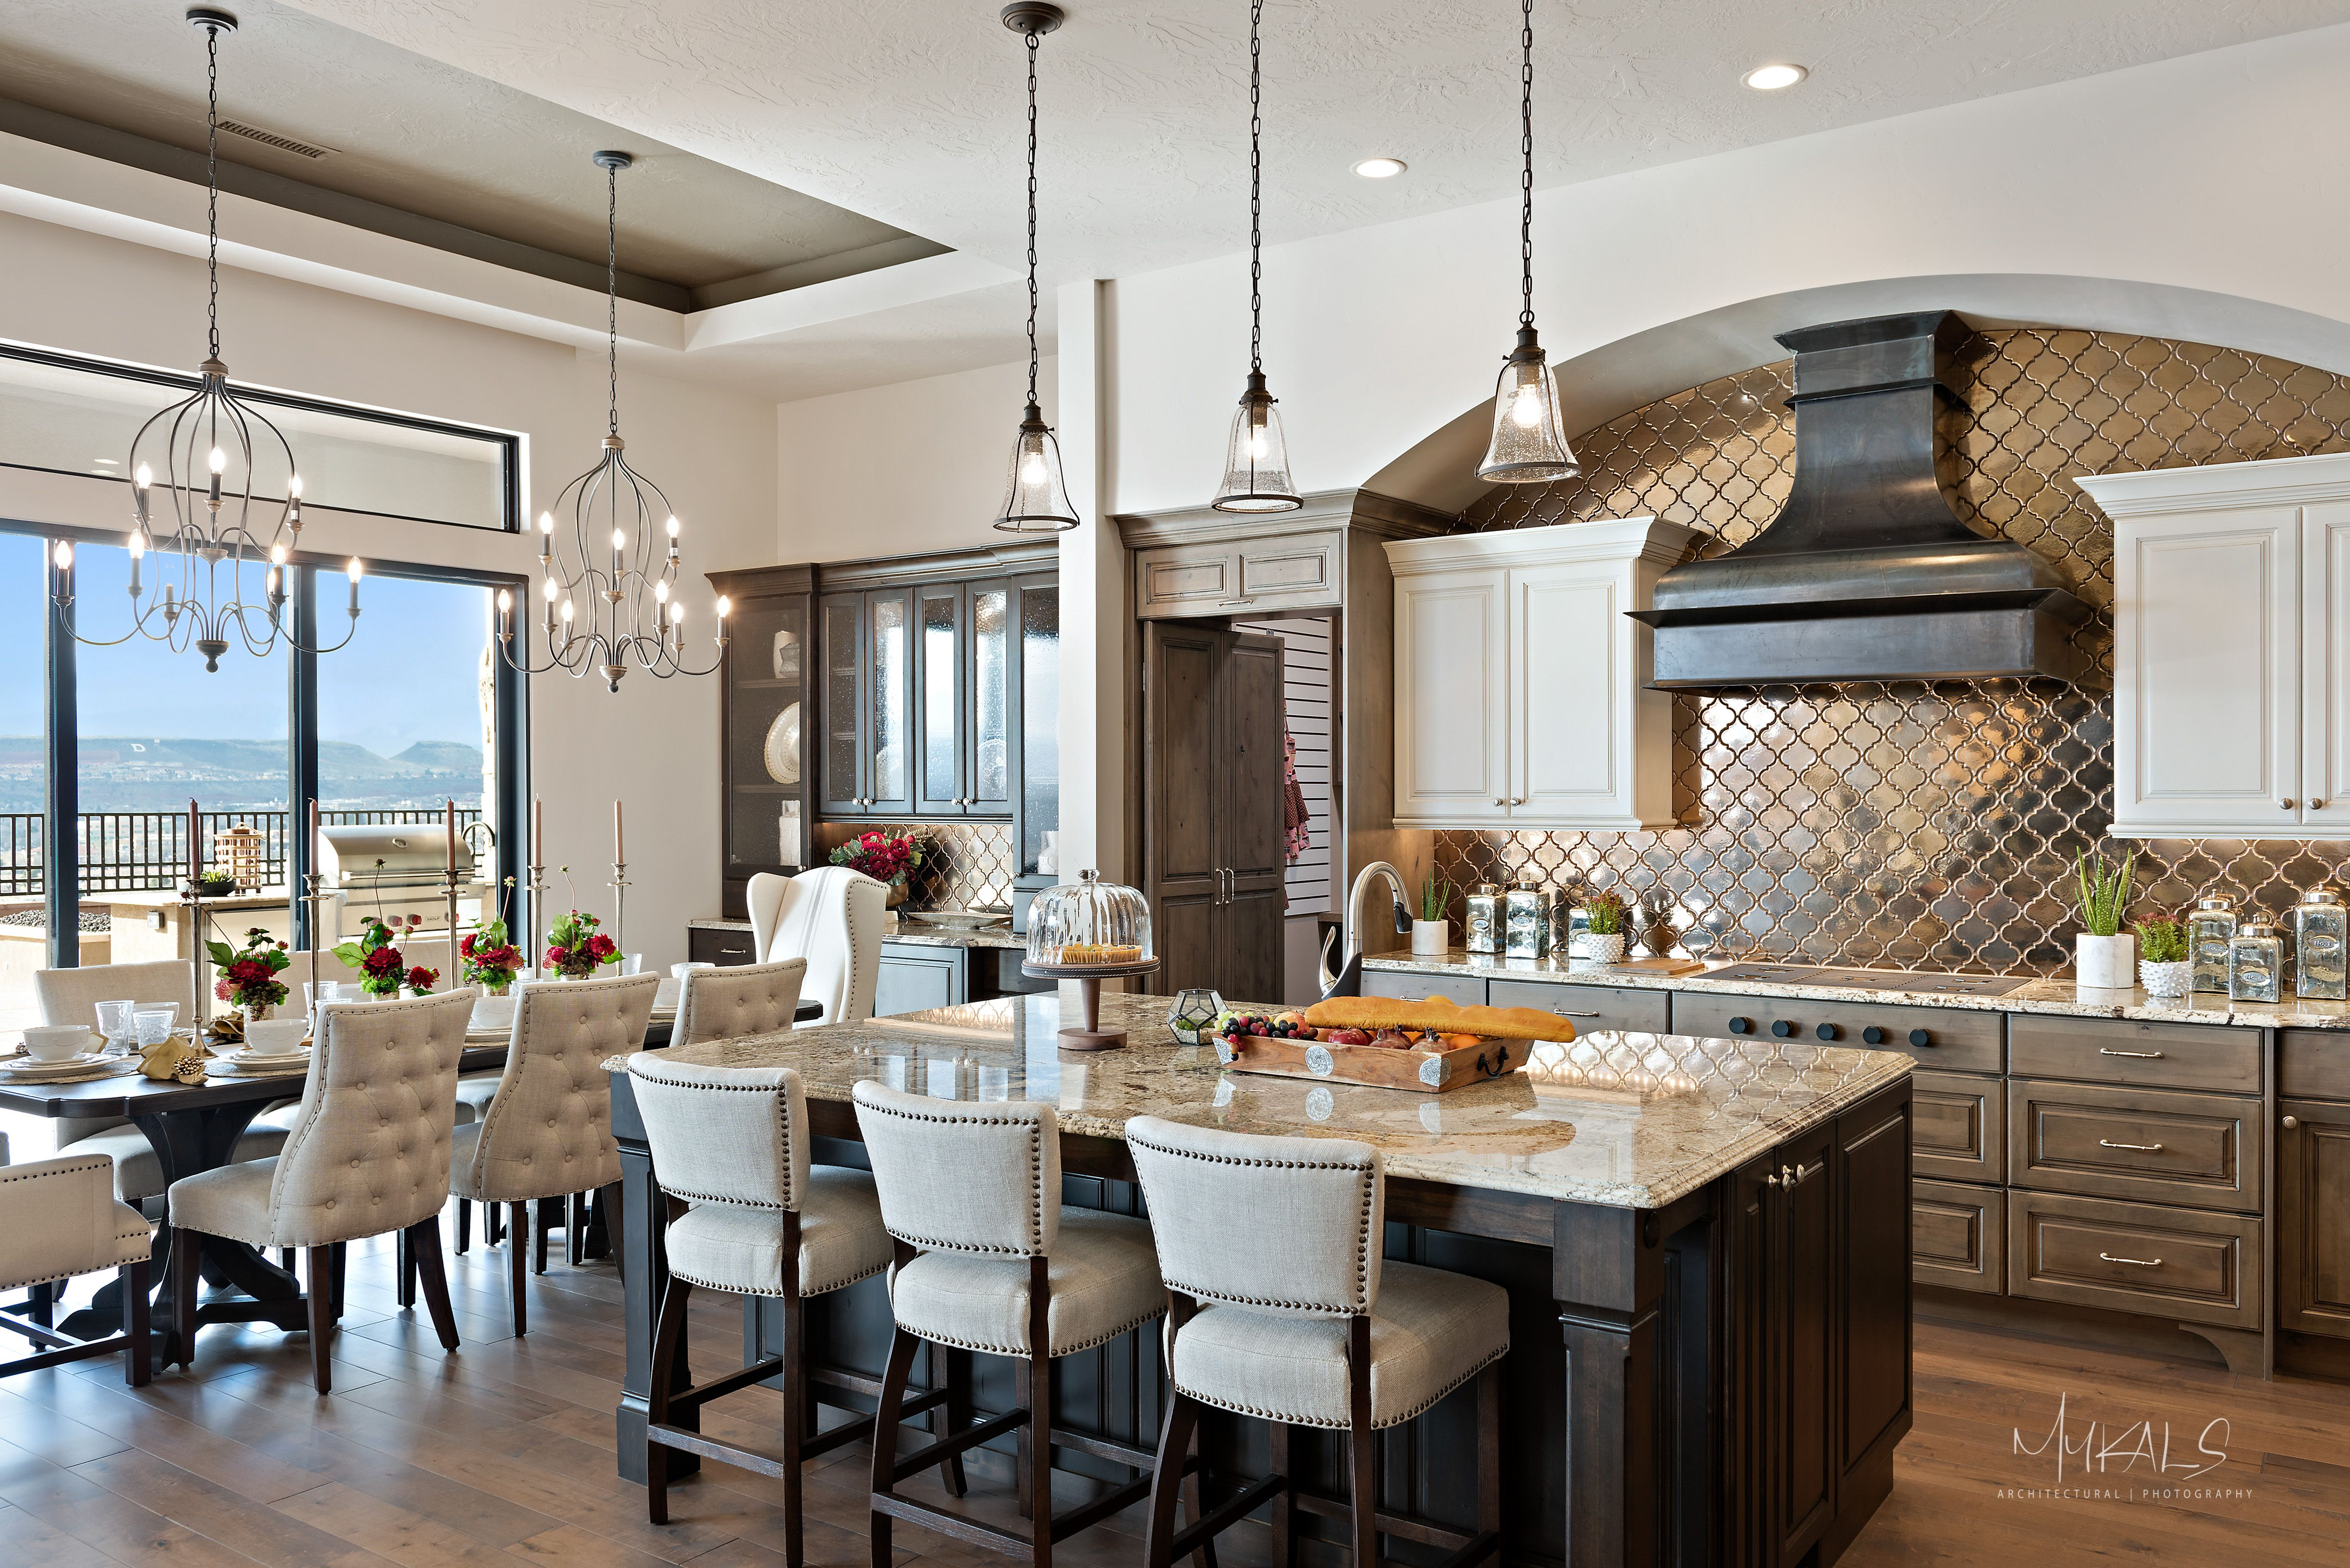 The Villa Hygge St George Area Parade Of Homes Home Parade Of